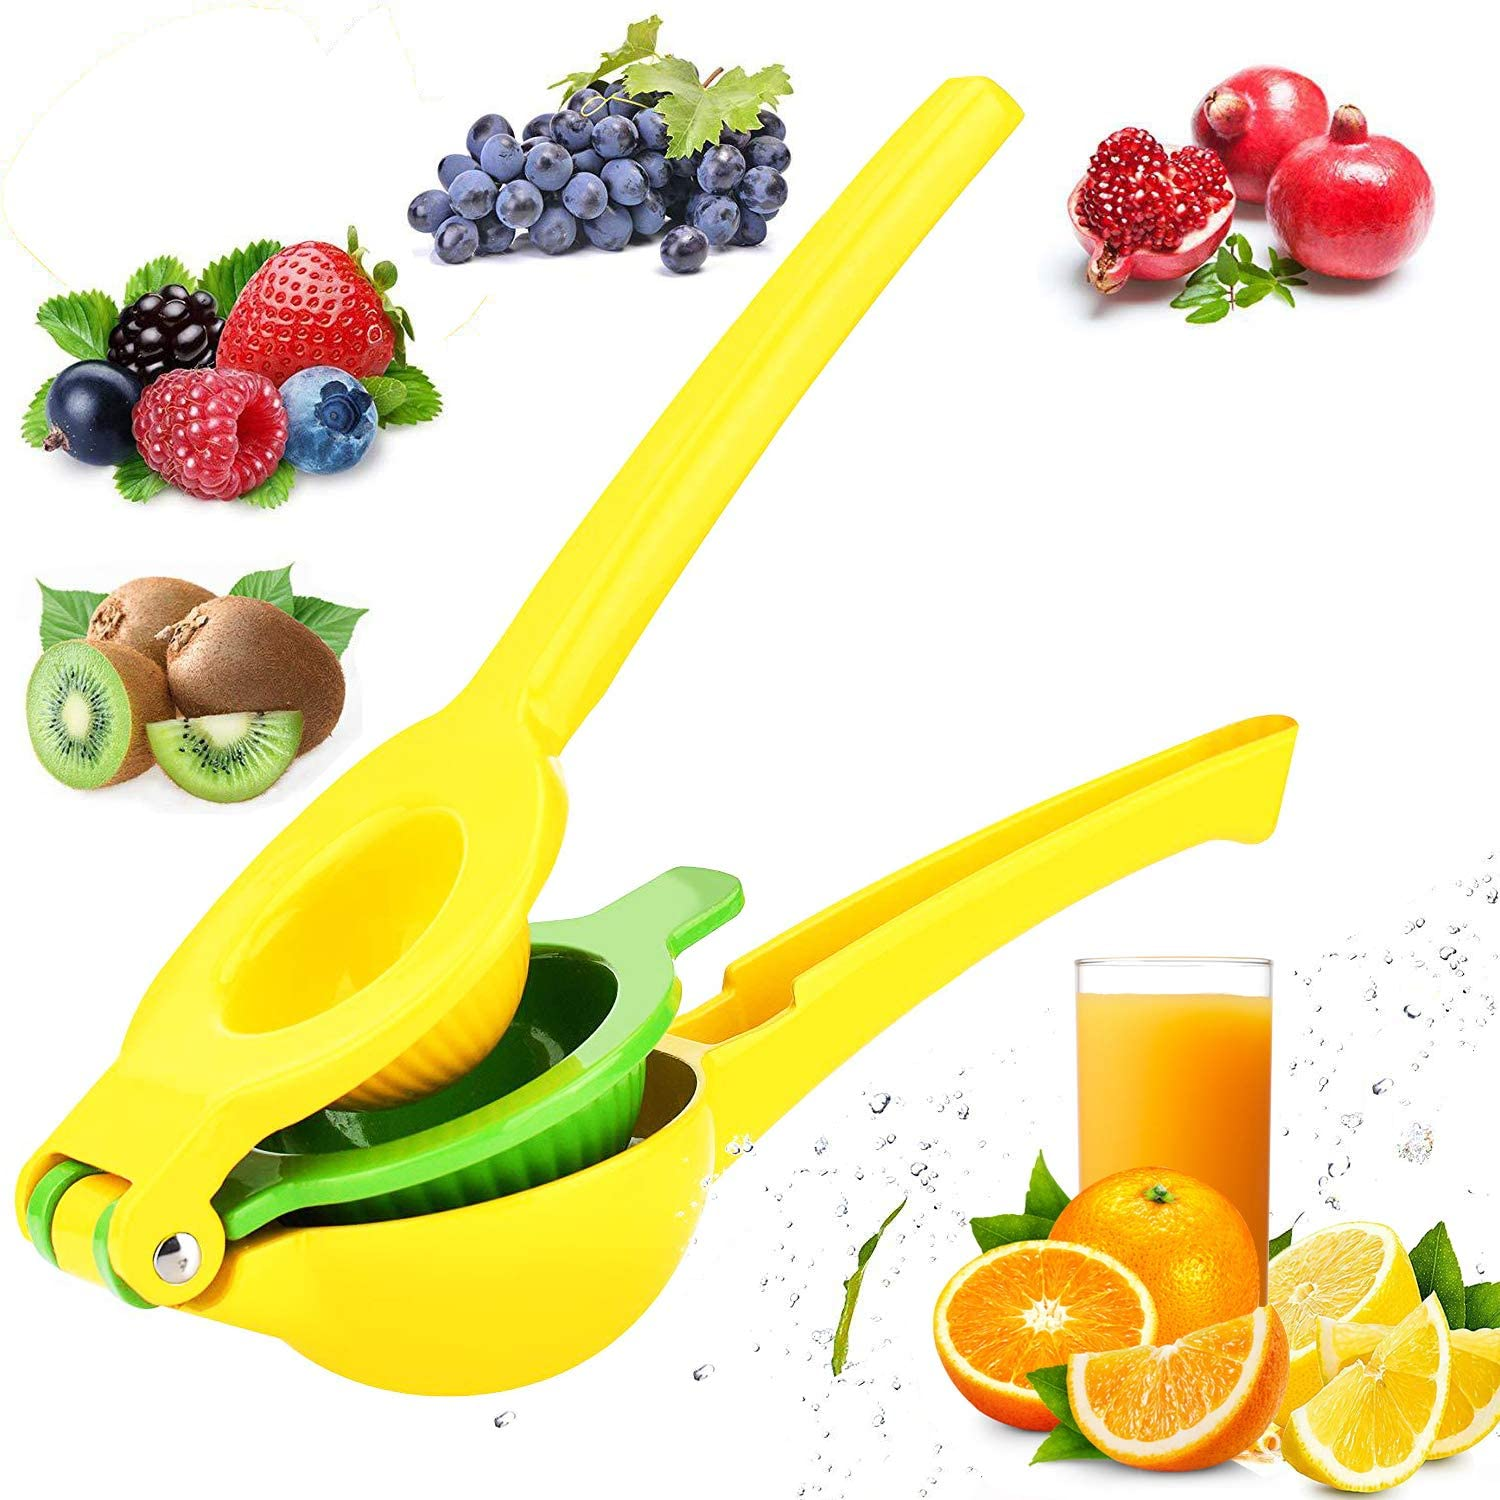 Lemon Lime Squeezer -Premium Quality Metal Manual Citrus Press Juicer with 2 in 1 Double Layer Orange Citrus Press Heavy Duty Fruit Press for Party Drink(Yellow Green)